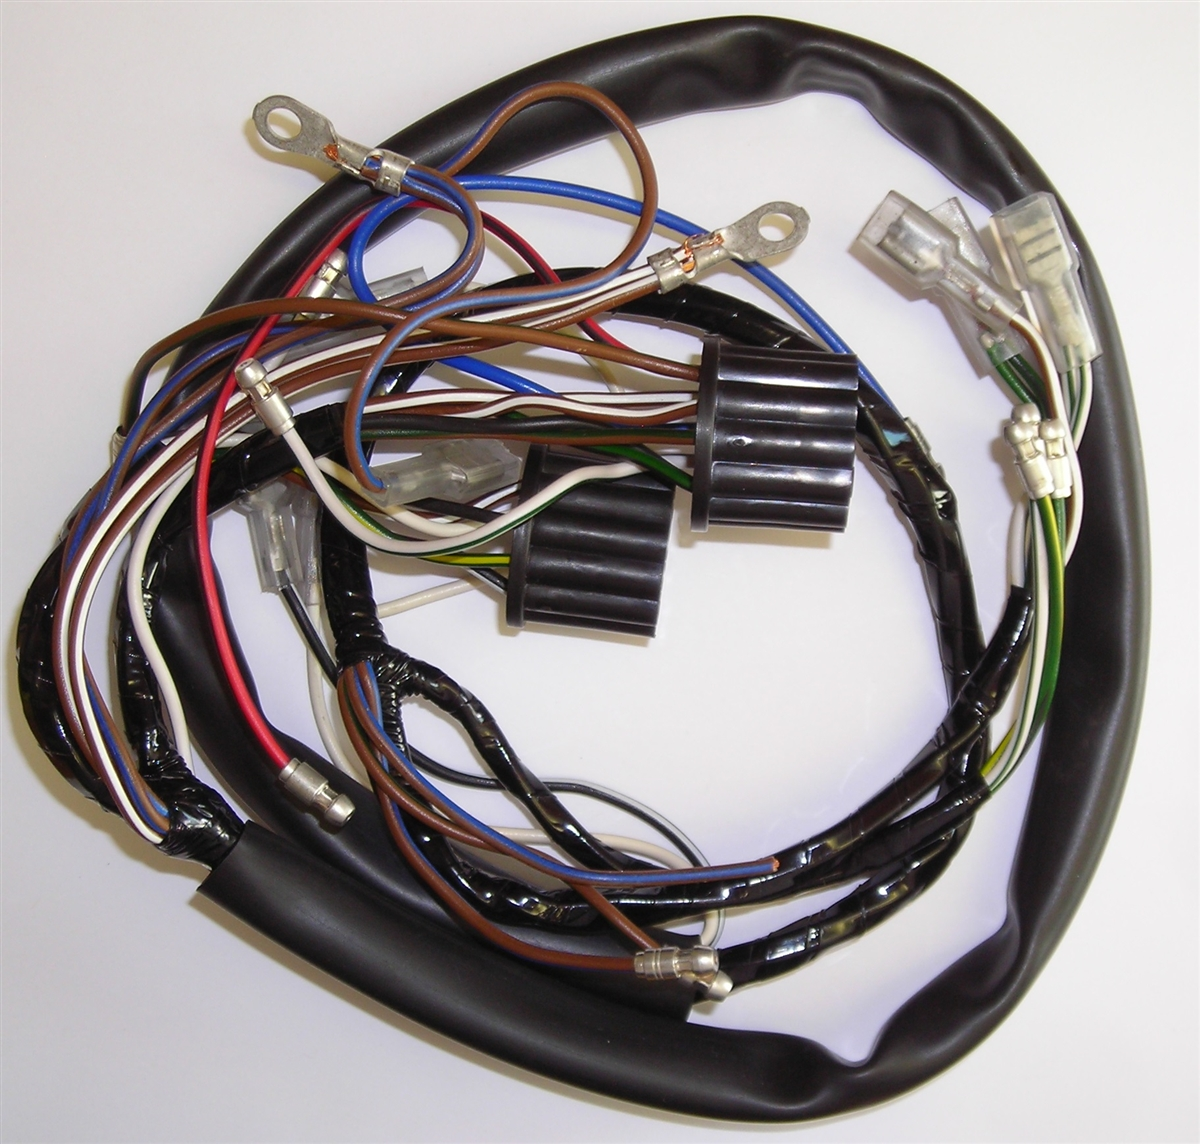 MC123PP 2?1374673704 motorcycle wiring harness motorcycle wire harness tape at webbmarketing.co